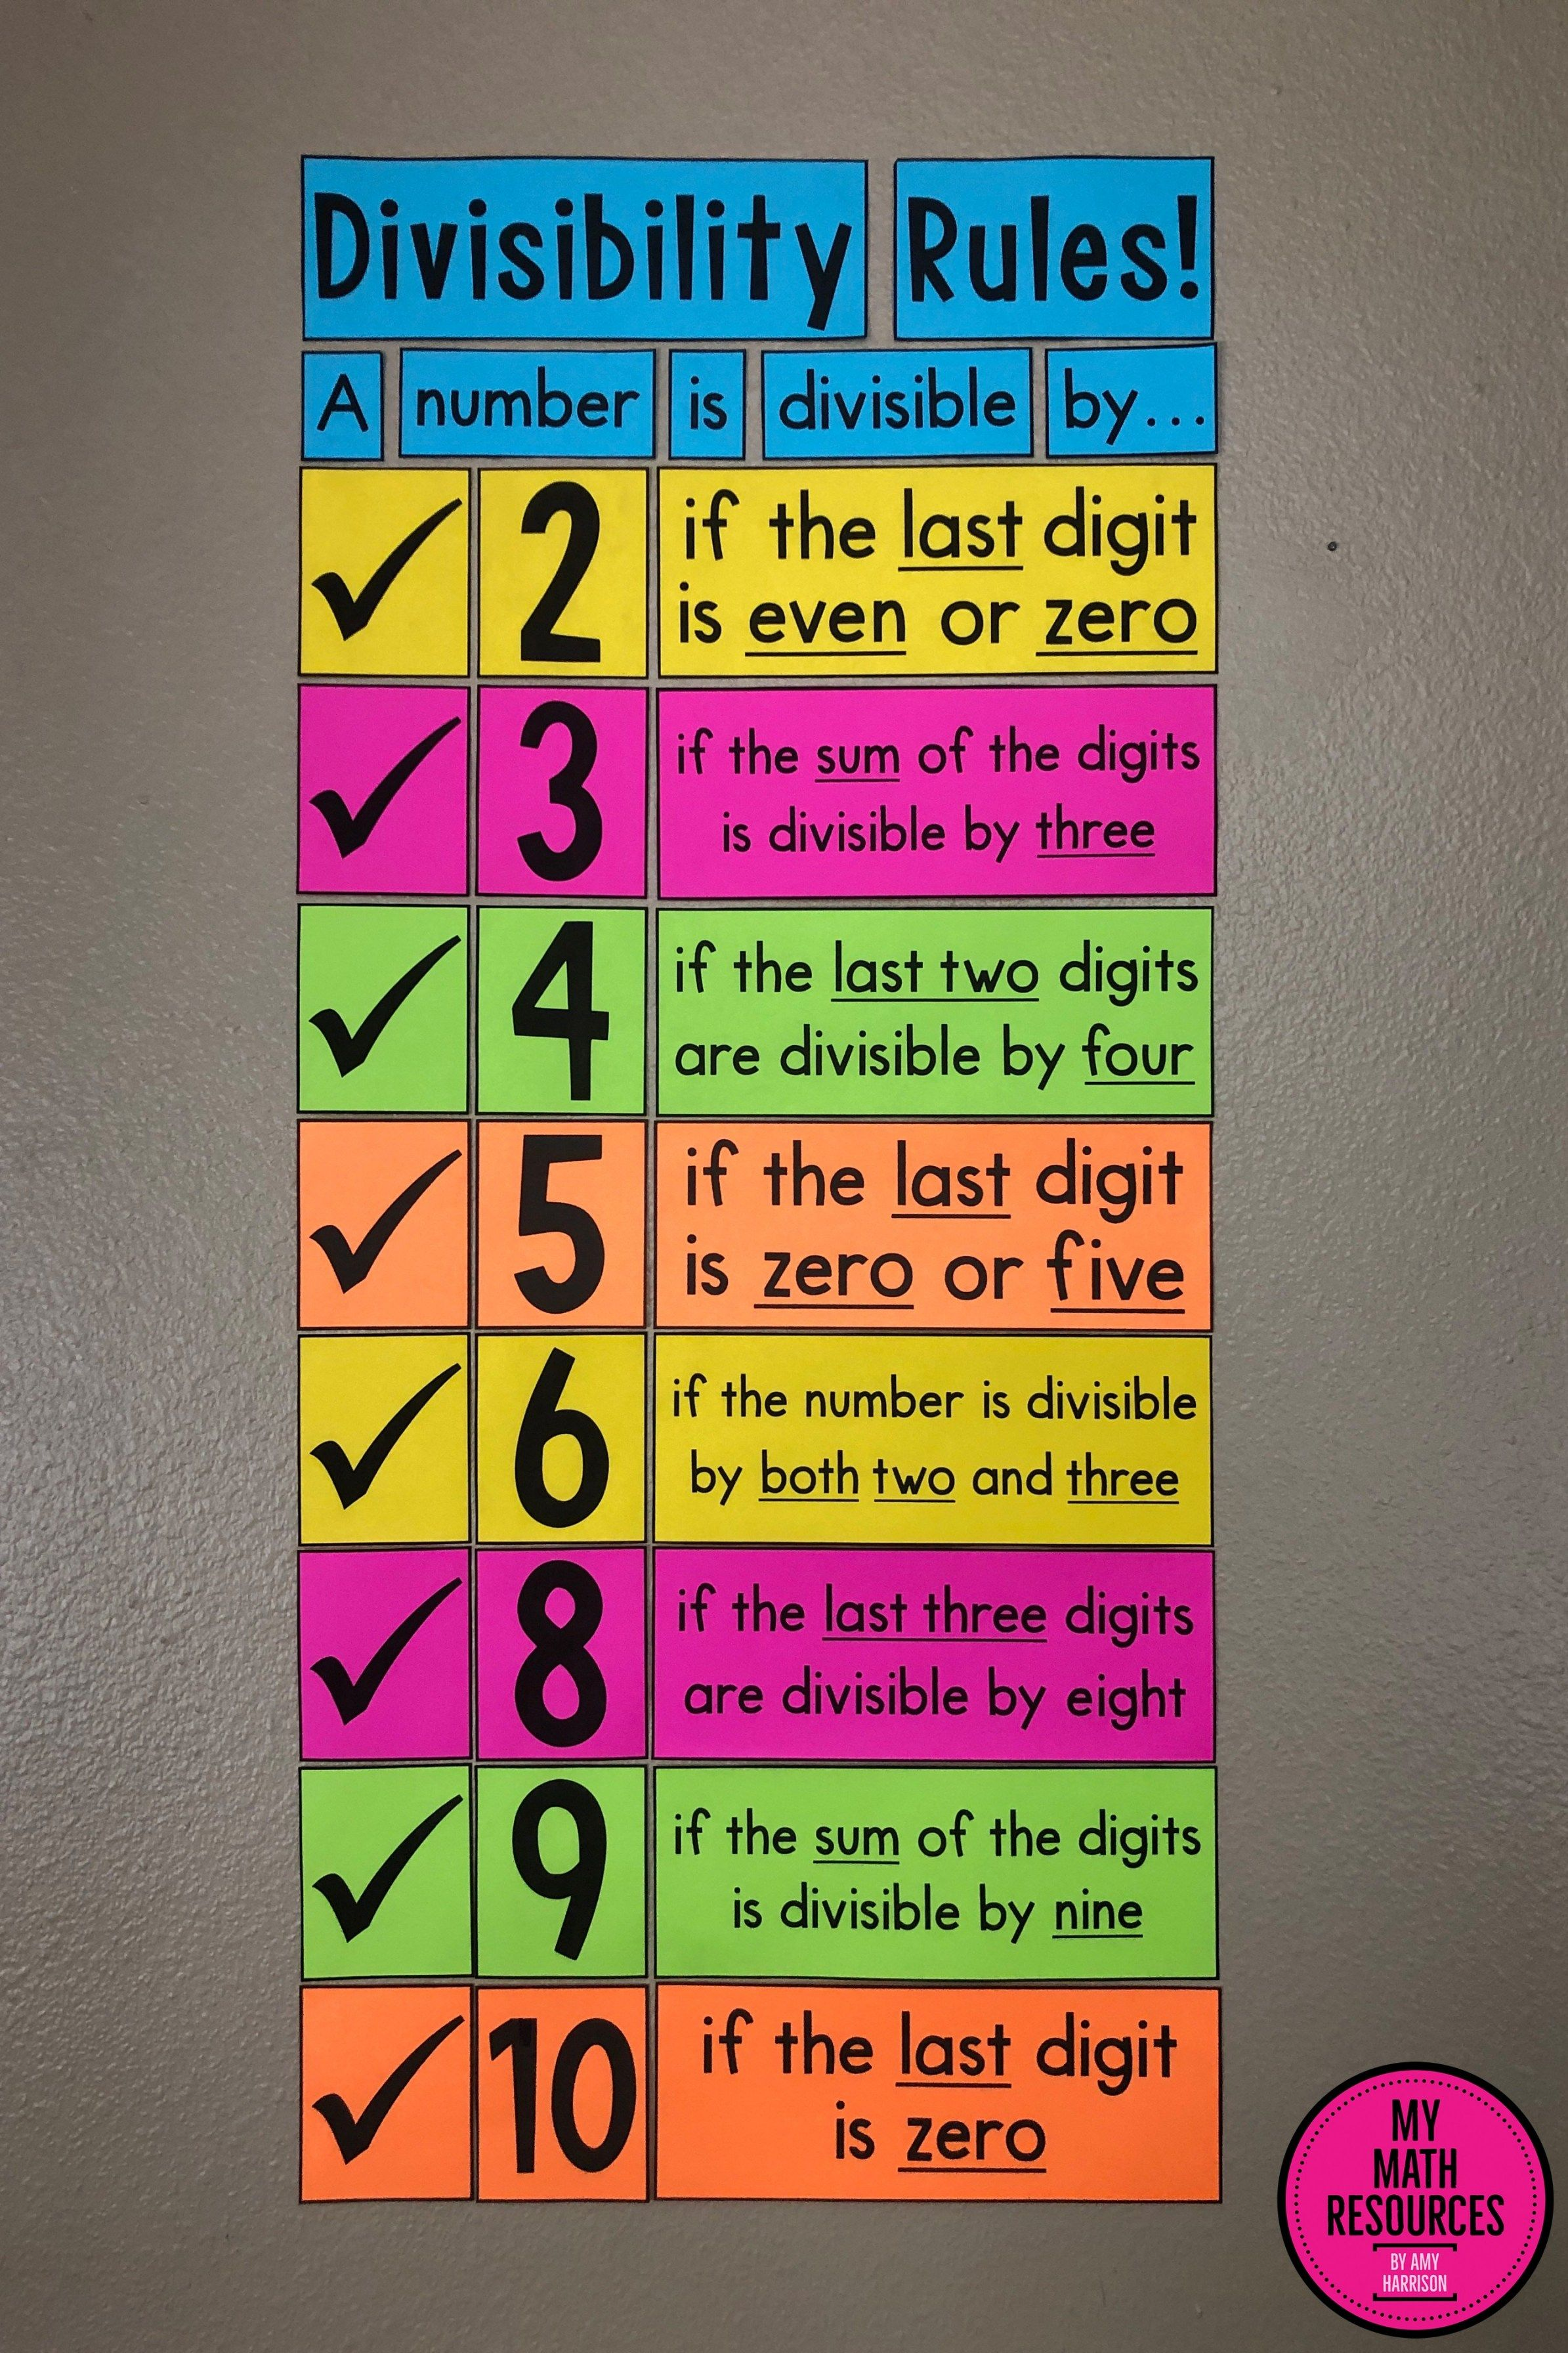 medium resolution of My Math Resources - Divisibility Rules Poster   Math classroom decorations